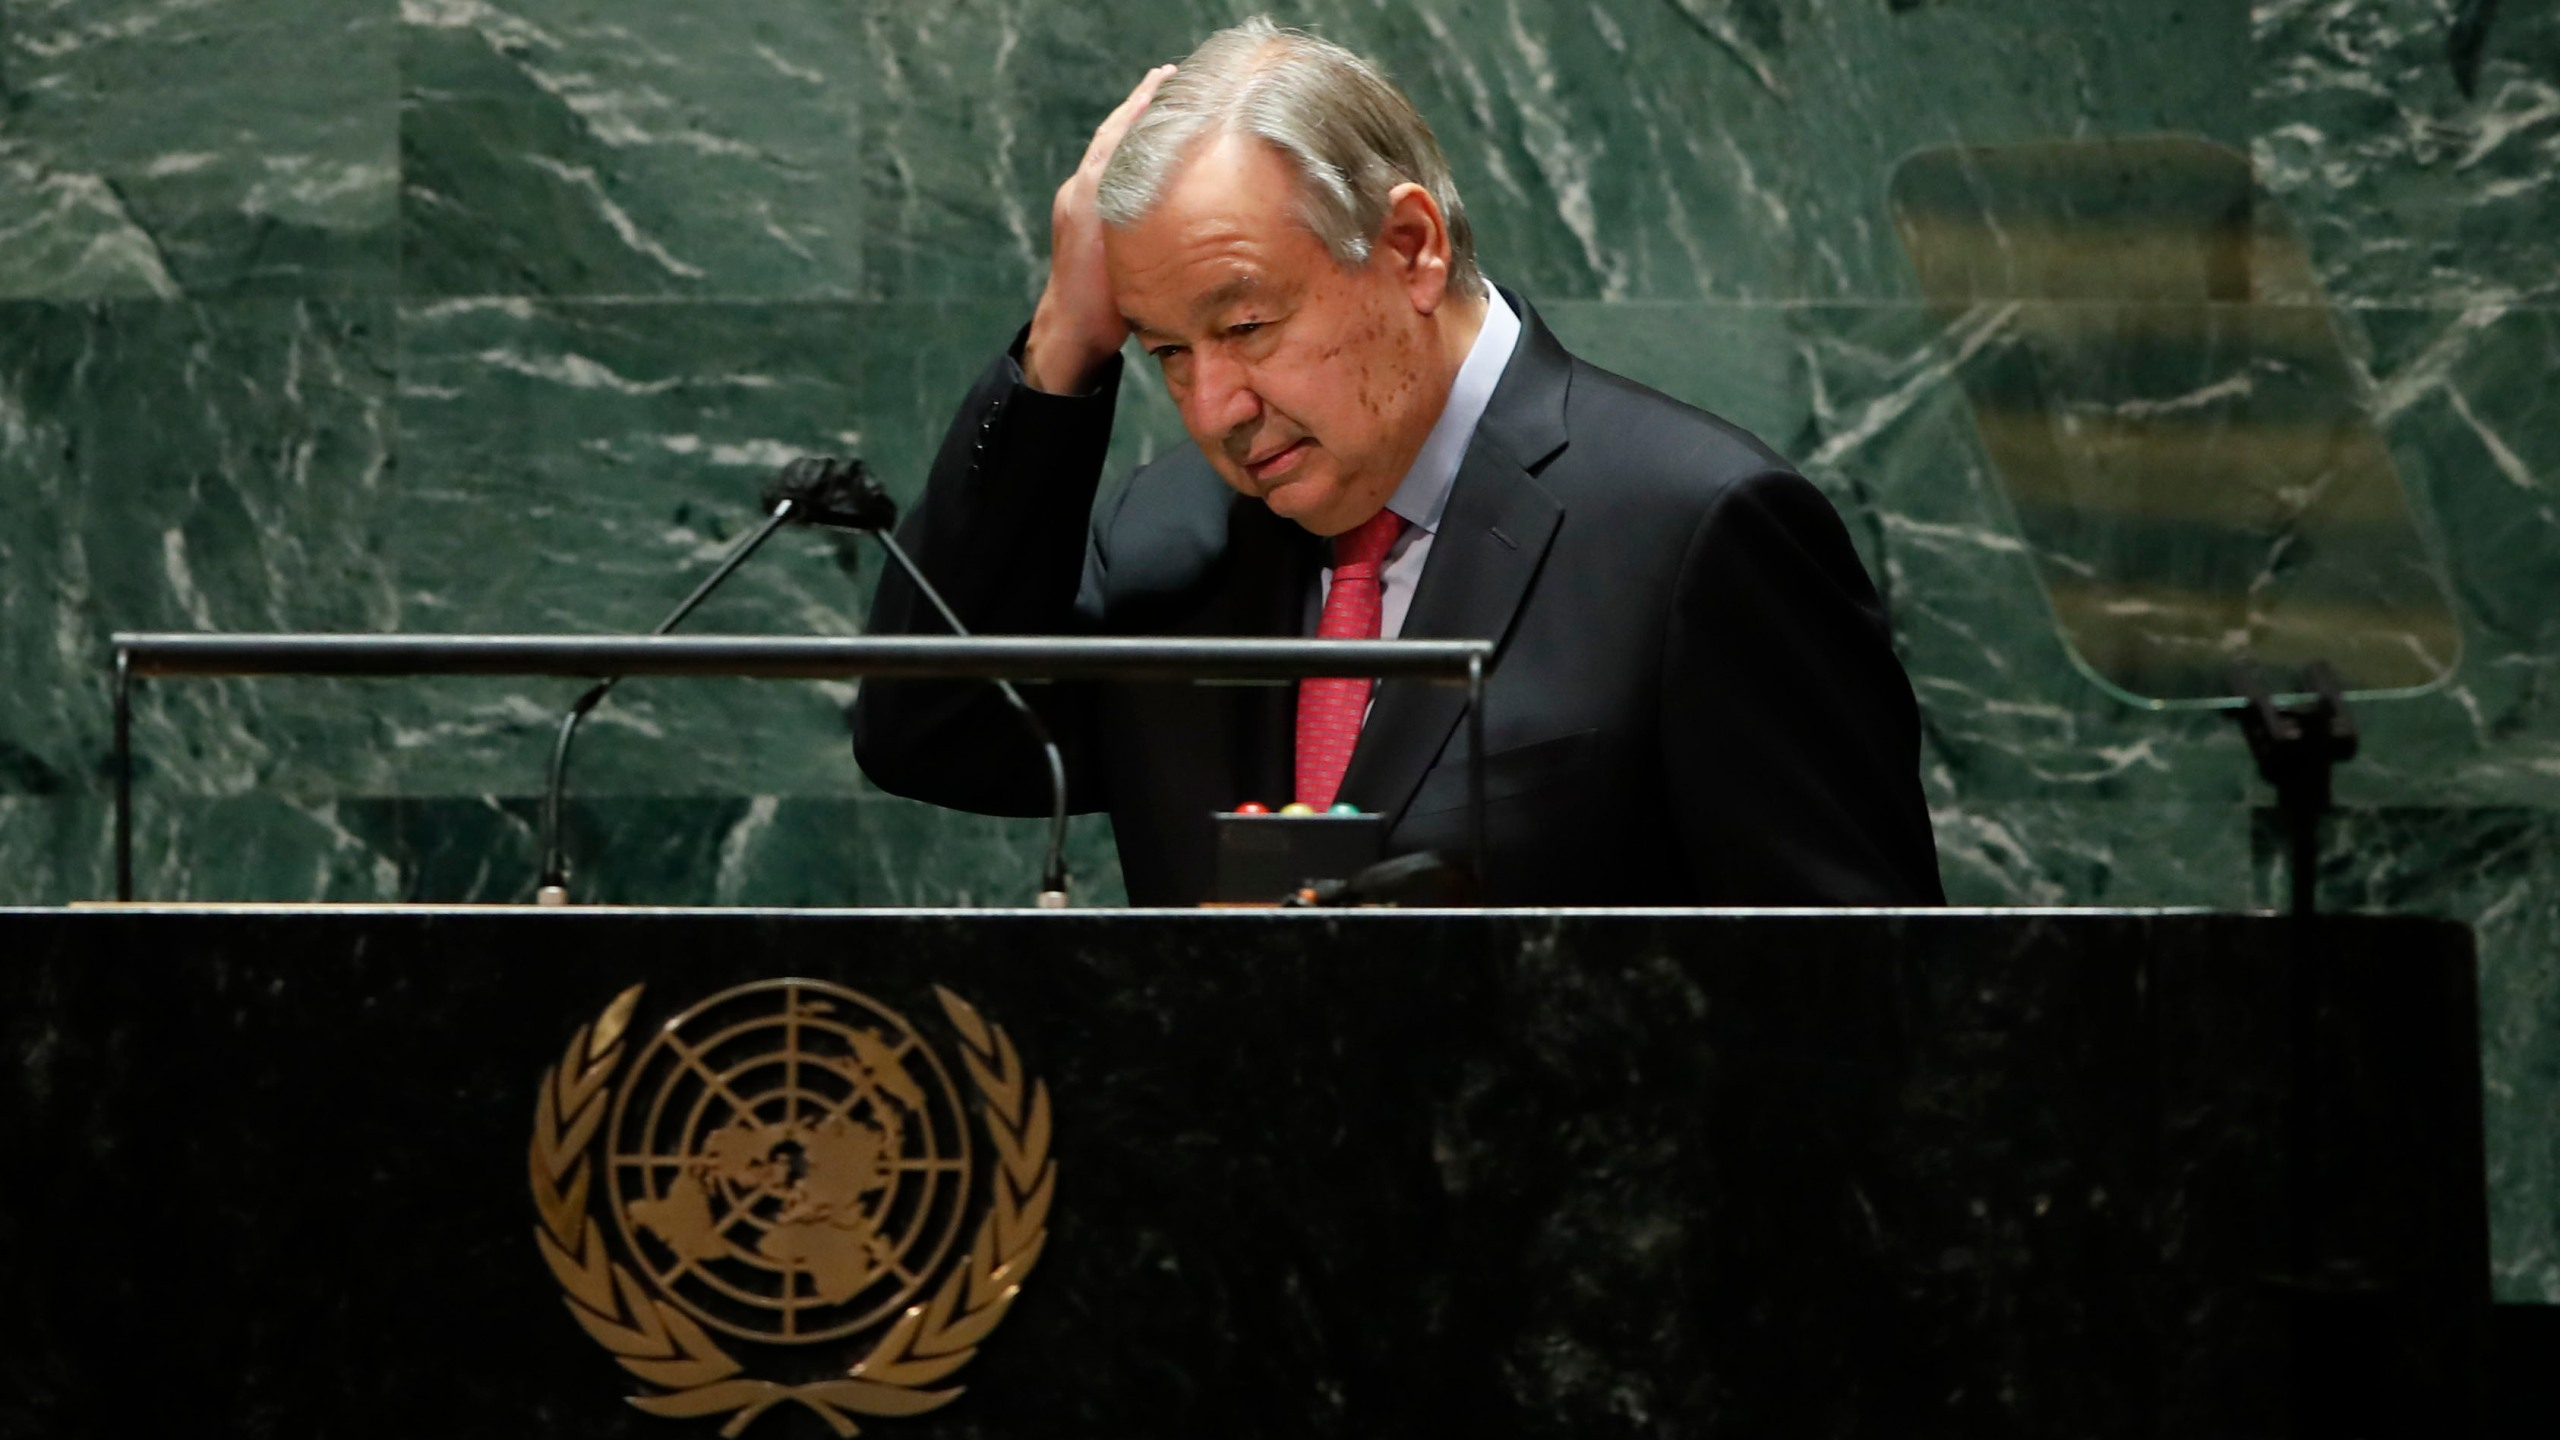 United Nations Secretary-General Antonio Guterres addresses the 76th Session of the U.N. General Assembly in New York City